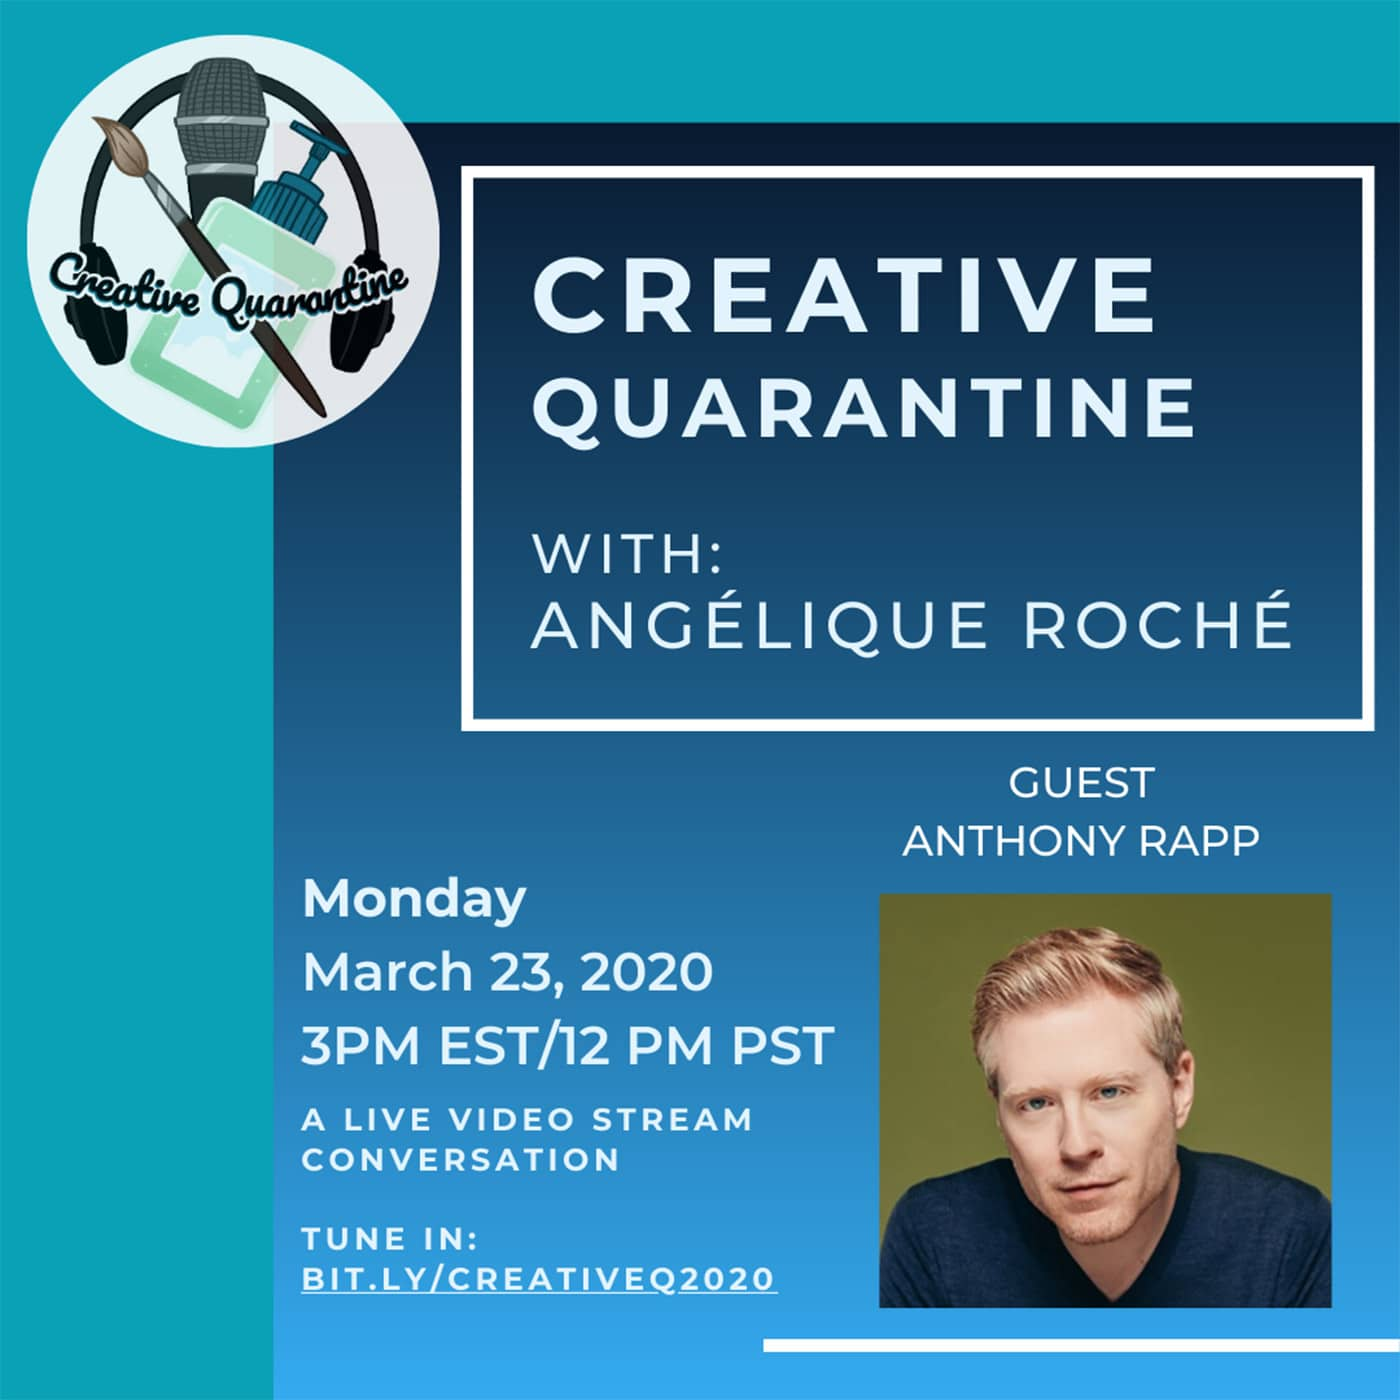 Creative Quarantine - Anthony Raap